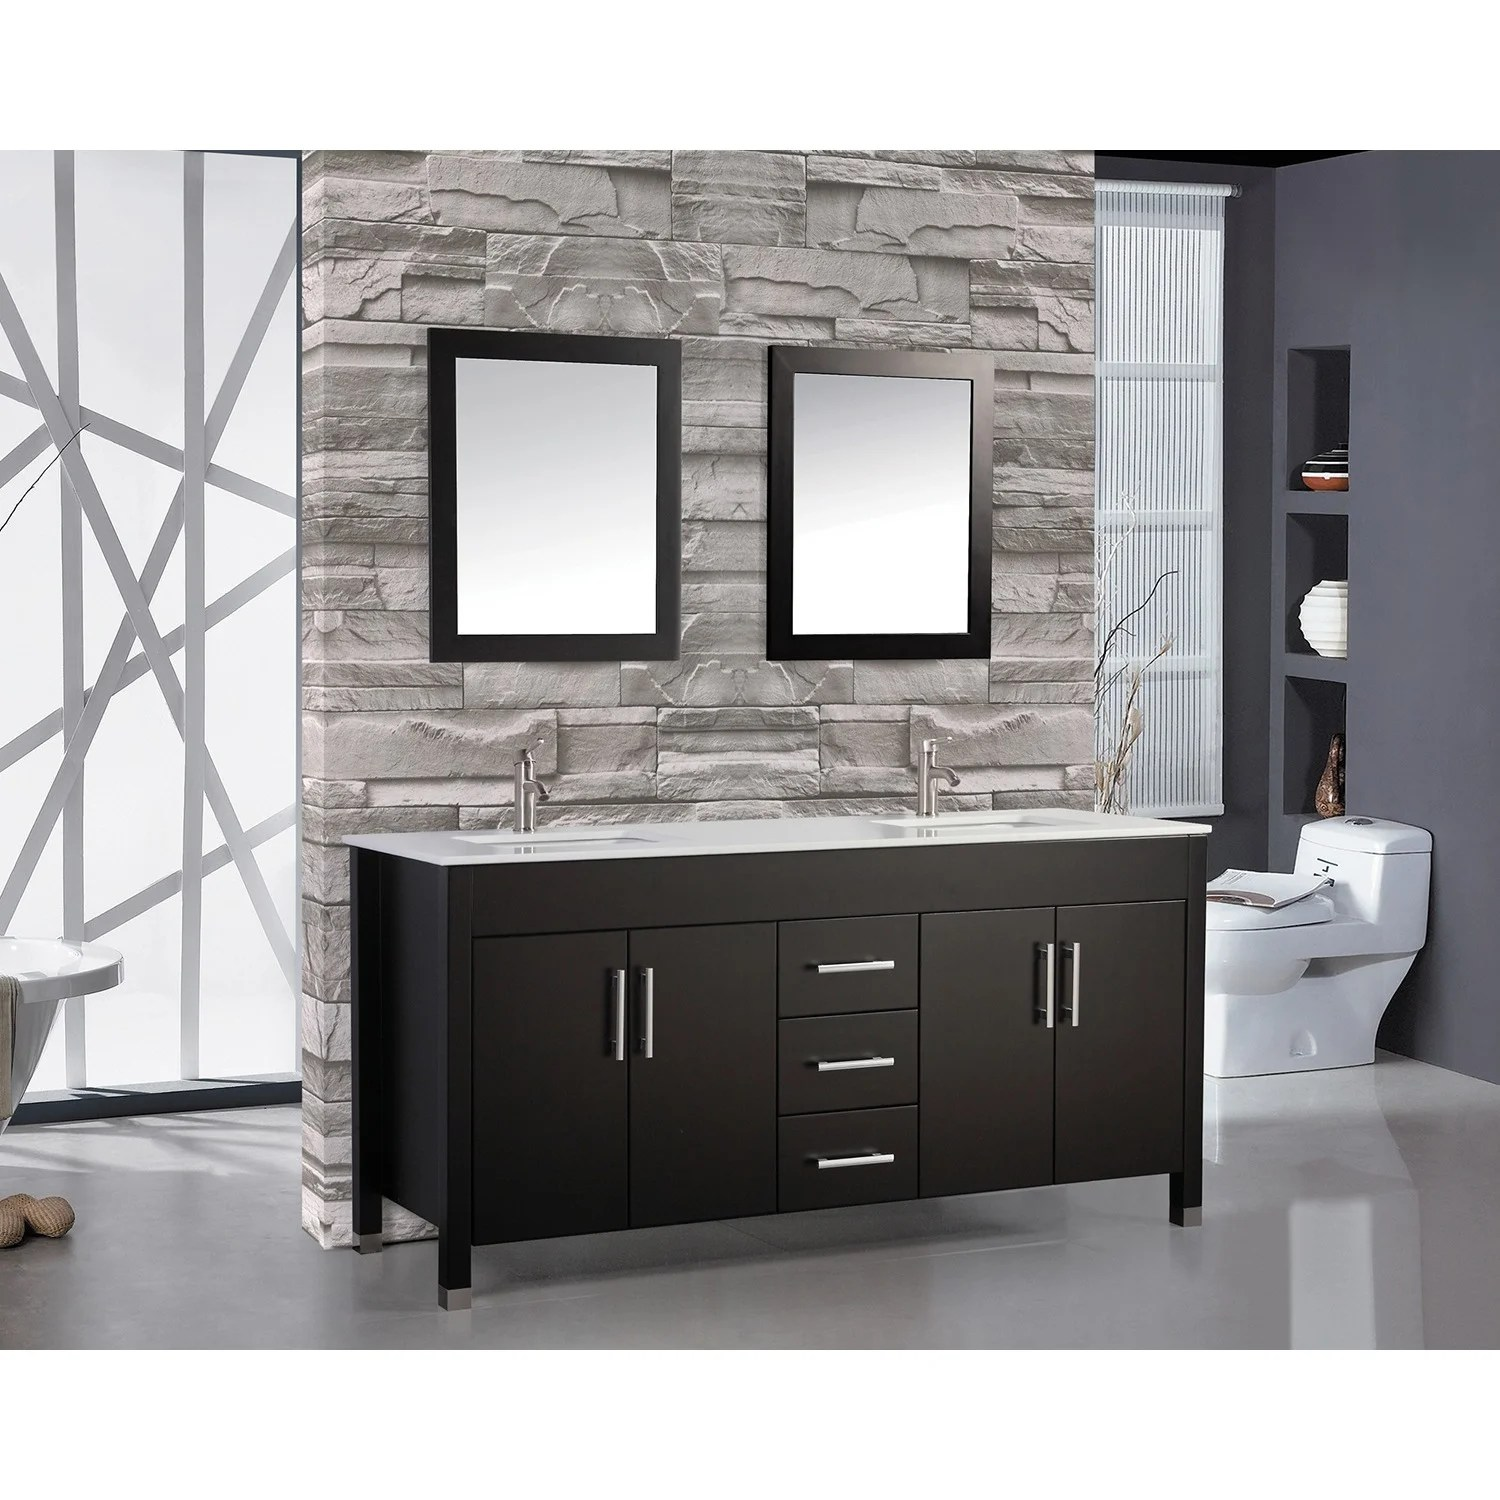 Vanities Bathroom Mtd Vanities Monaco 72 Inch Double Sink Bathroom Vanity Set With Mirror And Faucet